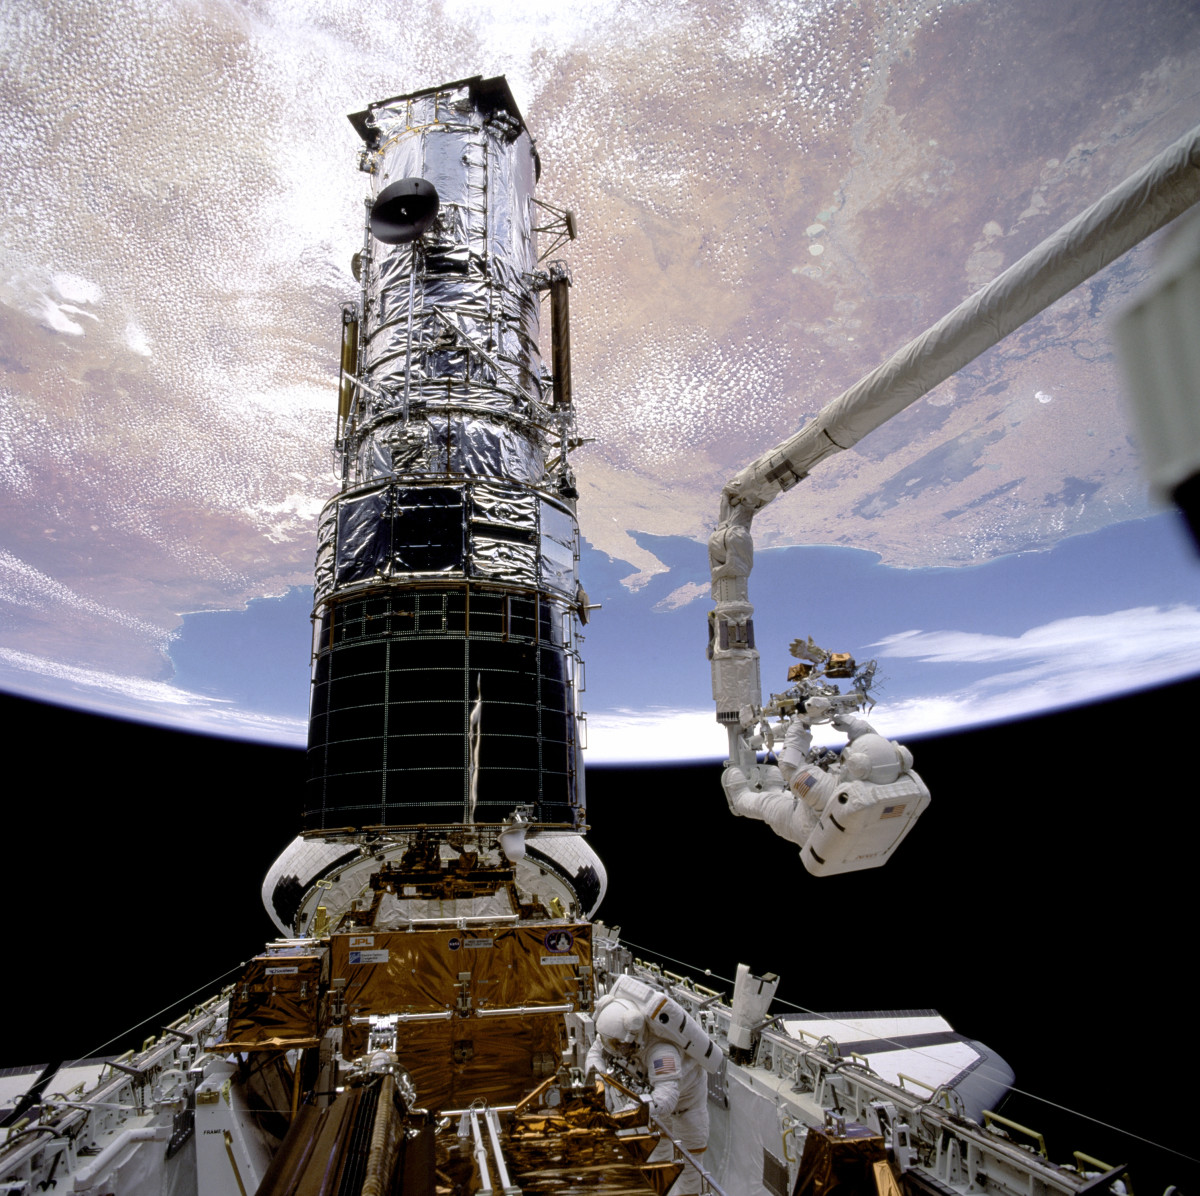 The Hubble Space Telescope is administered by the Space Telescope Science Institute which plays a key role in this story.